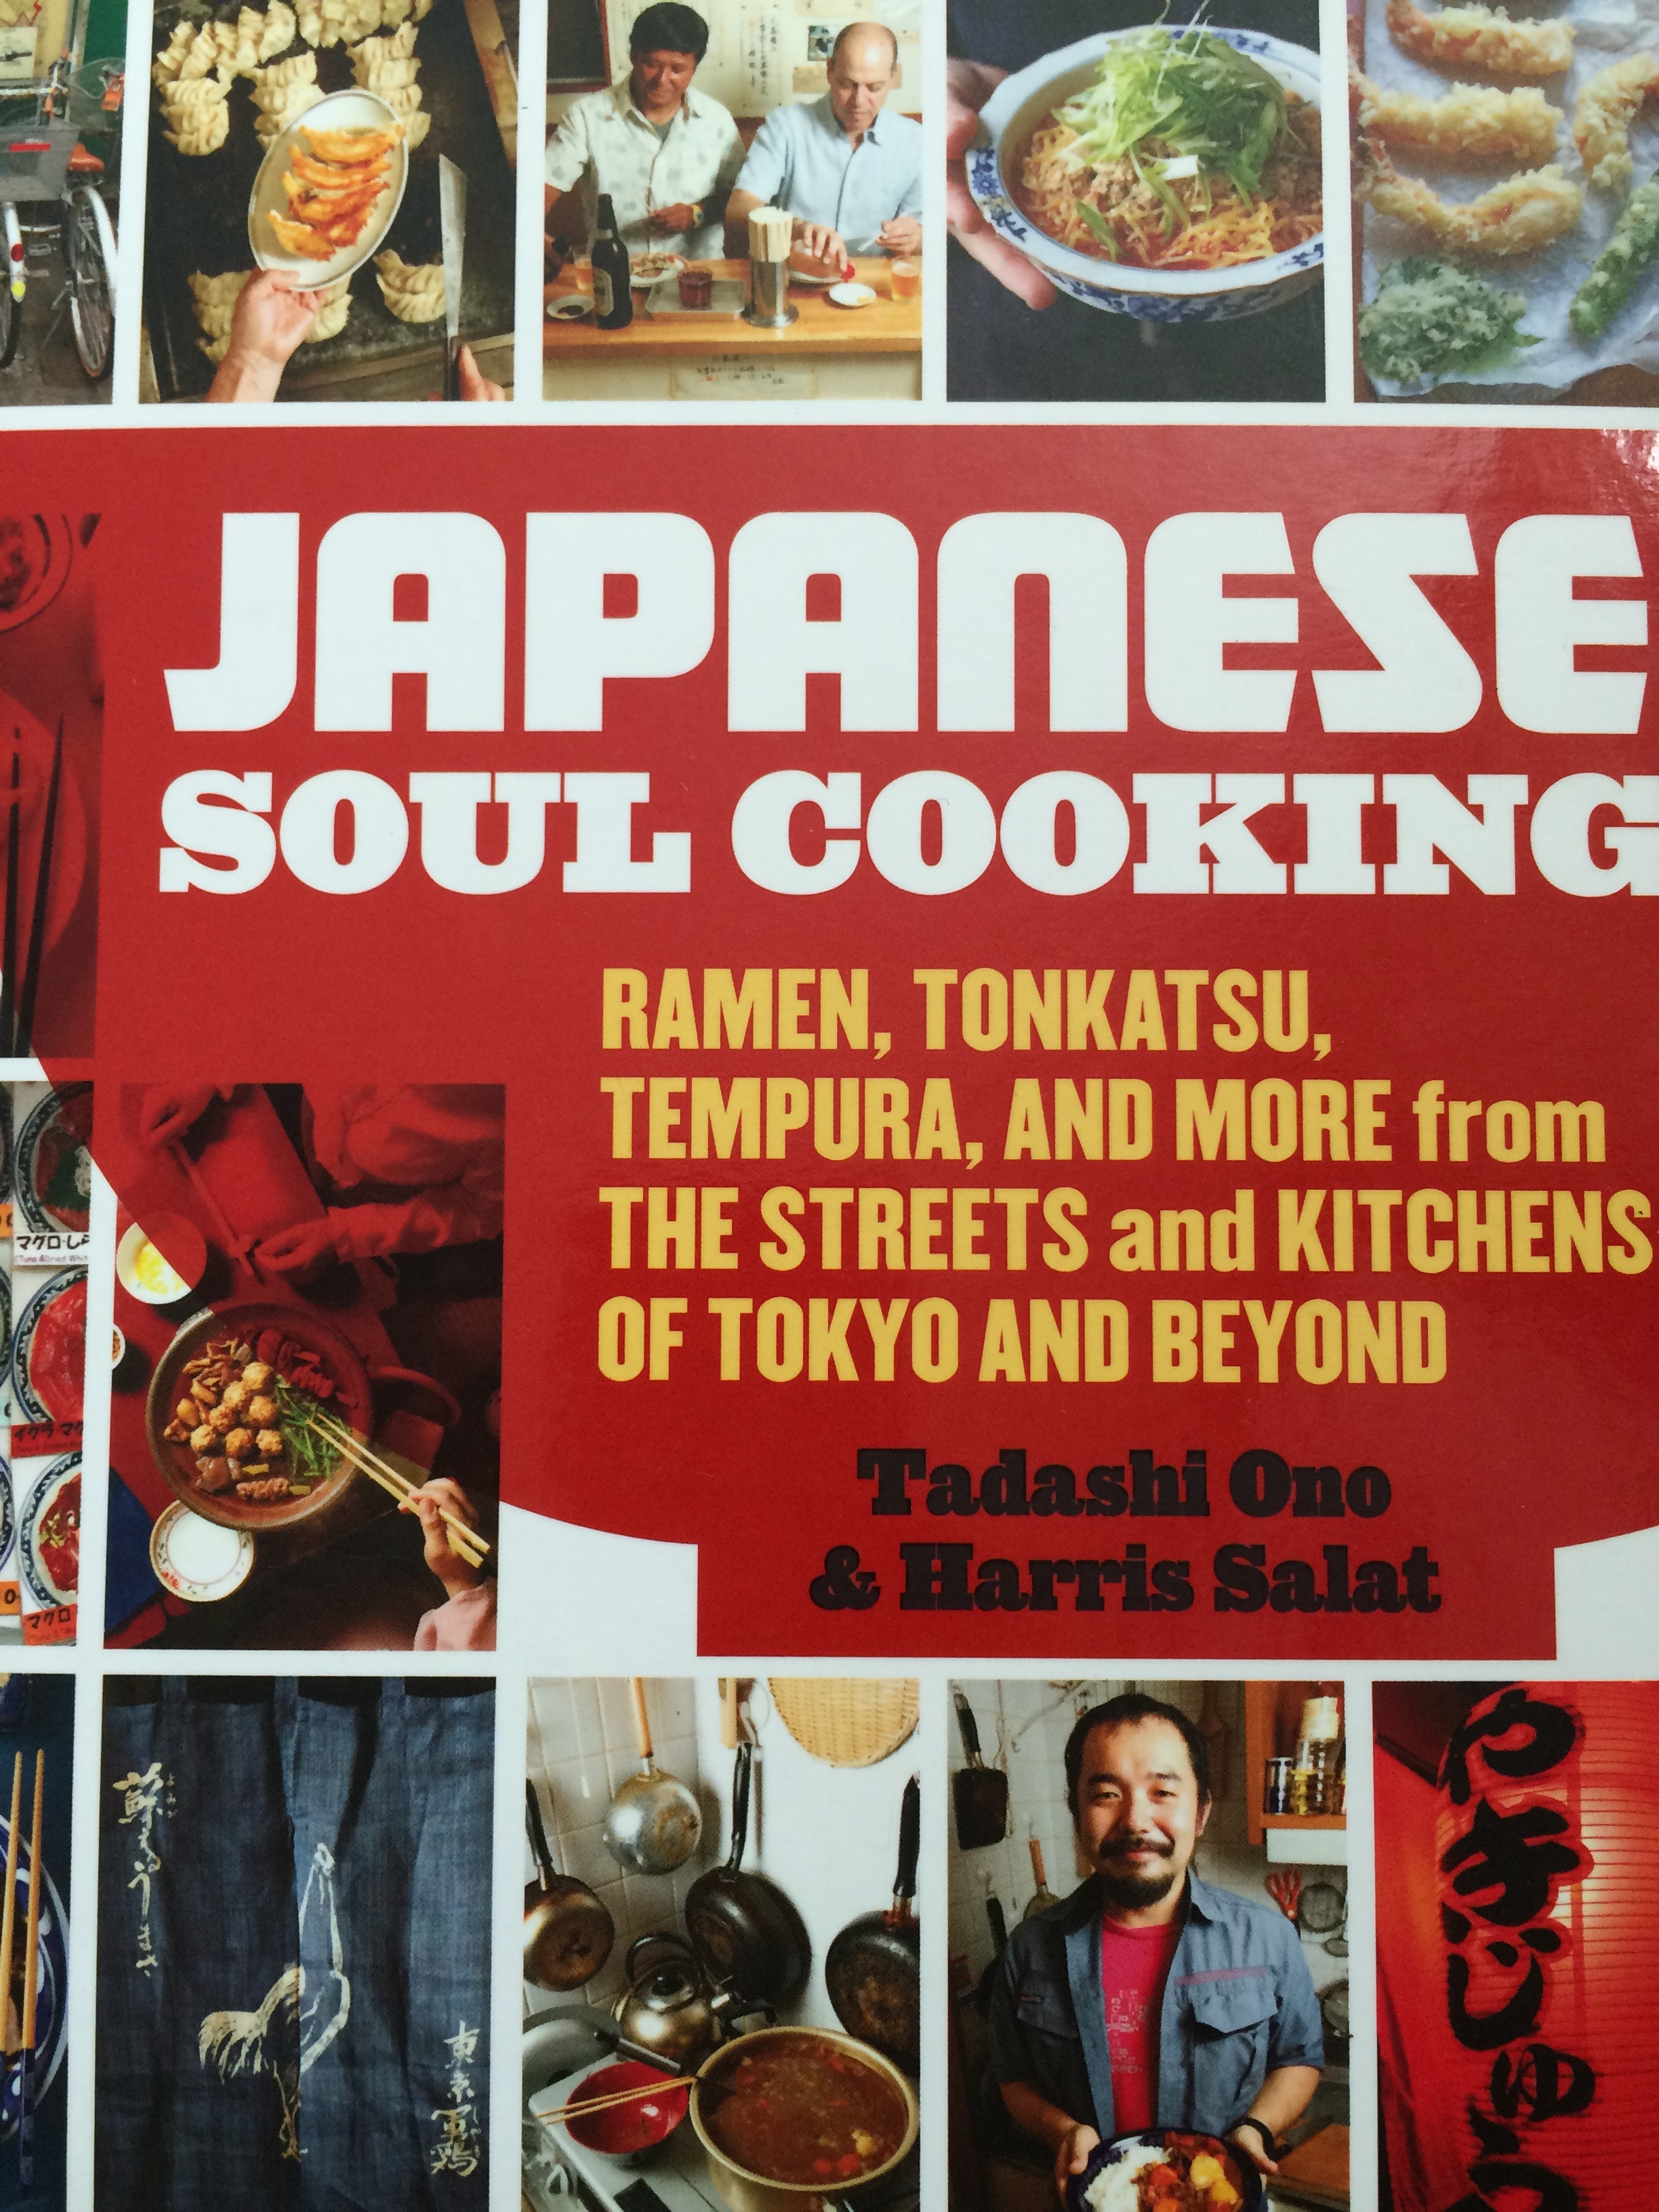 Ideas in food japanese soul cooking i love this book japanese soul cooking ramen tonkatsu tempura and more from the streets and kitchens of tokyo and beyond by tadashi ono harris salat forumfinder Gallery